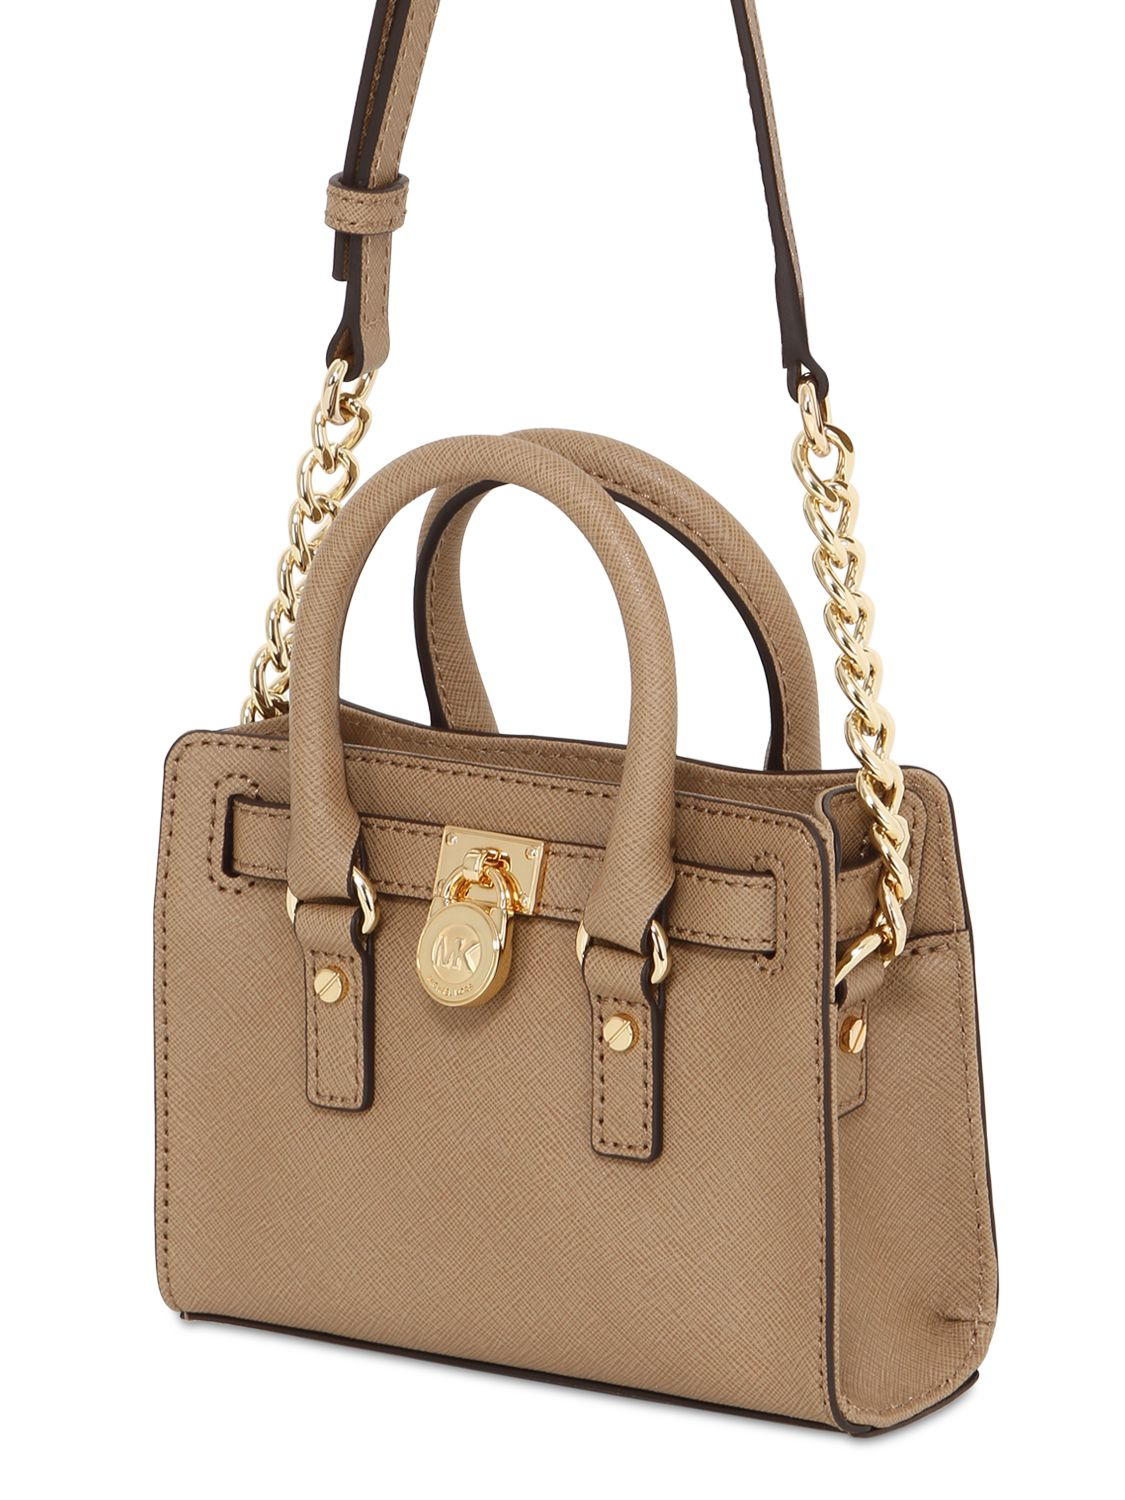 94a0ce0cc858 Michael Kors Saffiano Bag Uk | Stanford Center for Opportunity ...